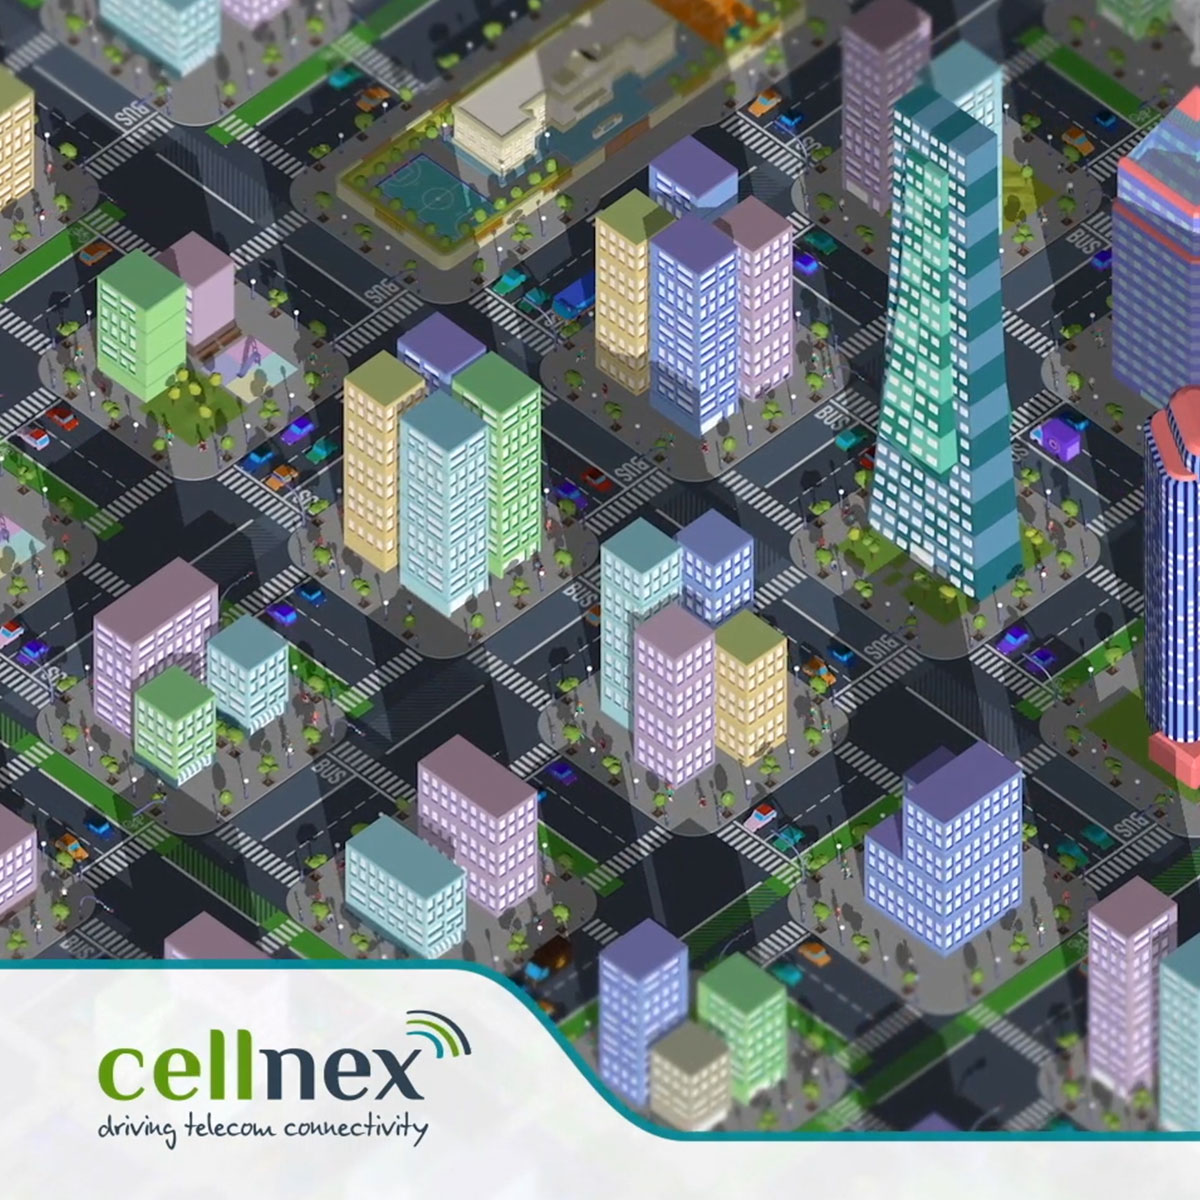 Cellnex: Brand Strategy